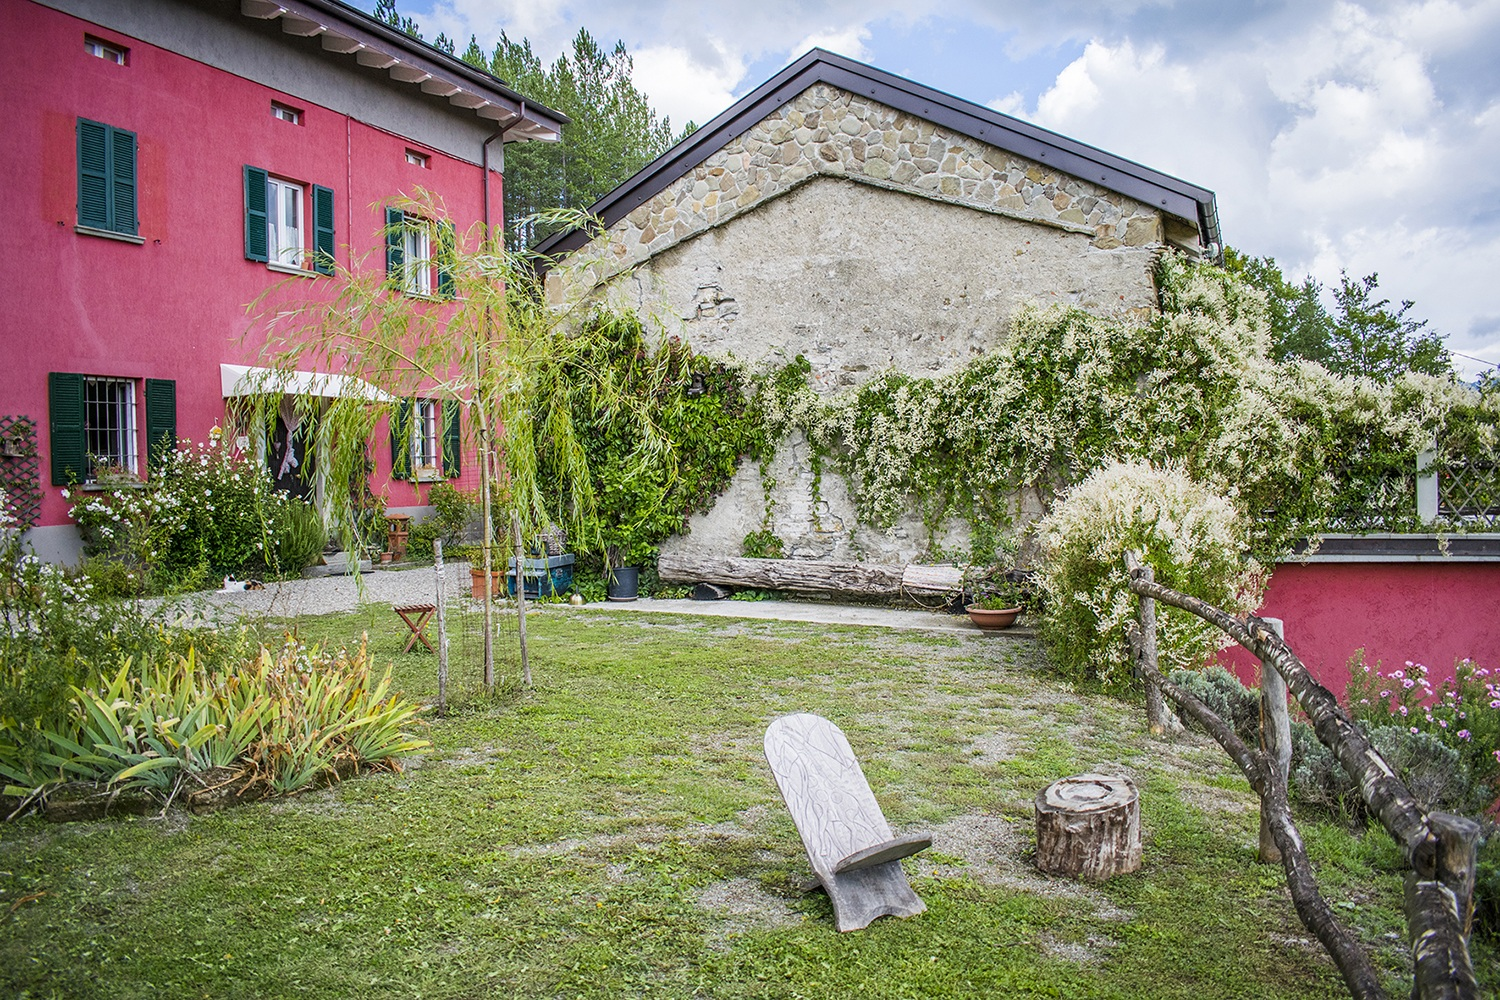 bed and breakfast Casa Boniceto di Albareto casa